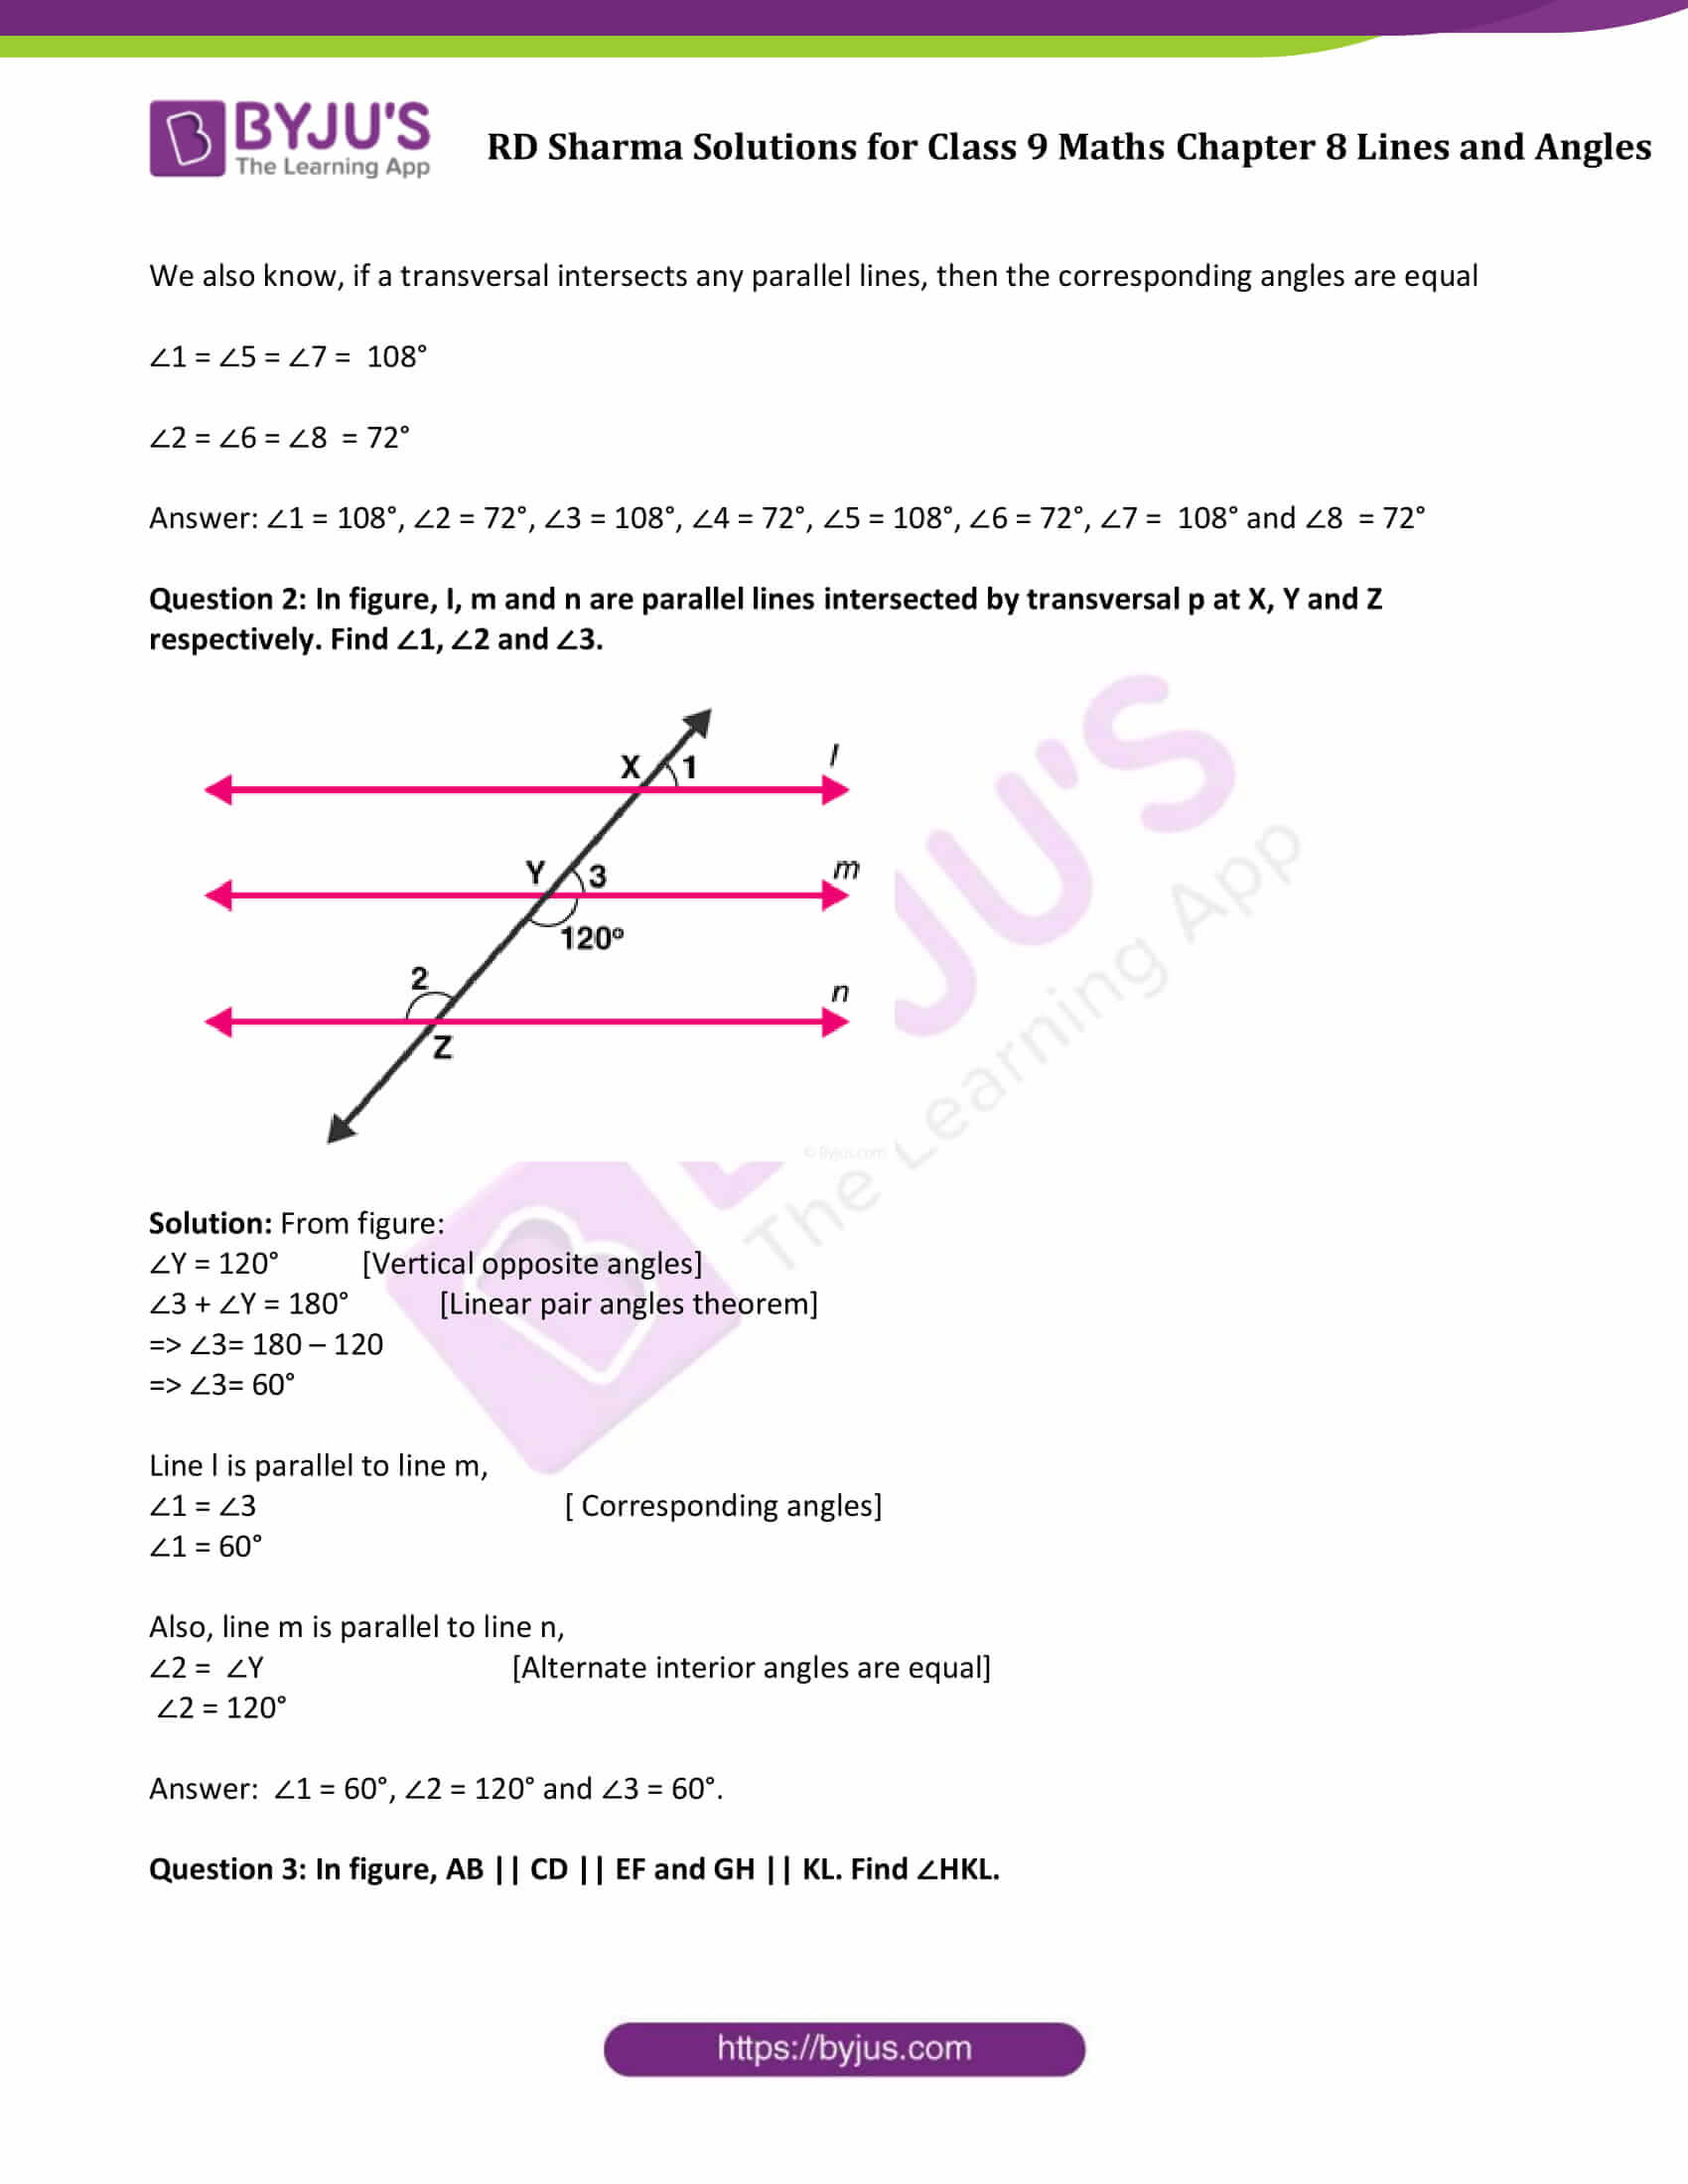 RD Sharma Solution class 9 Maths Chapter 8 Lines and Angles 17